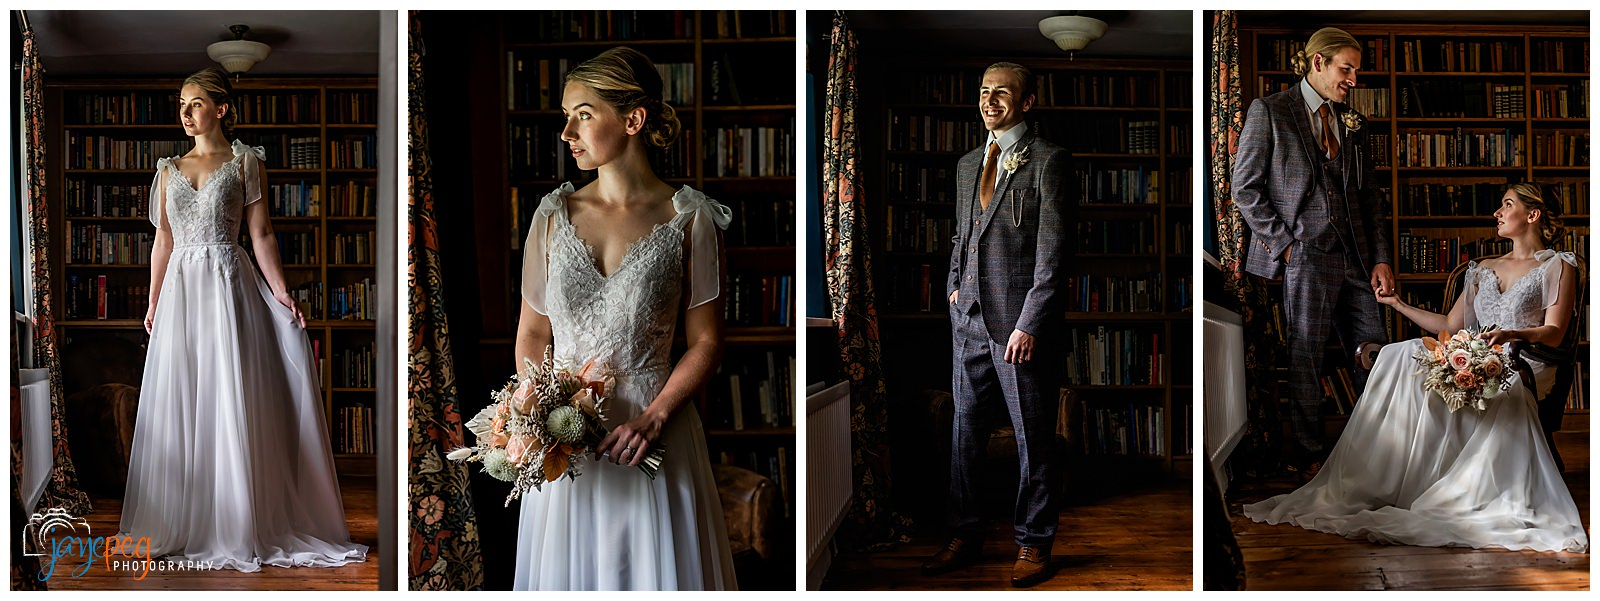 collage of portraits of a bride, a groom and a bride and groom together in a library